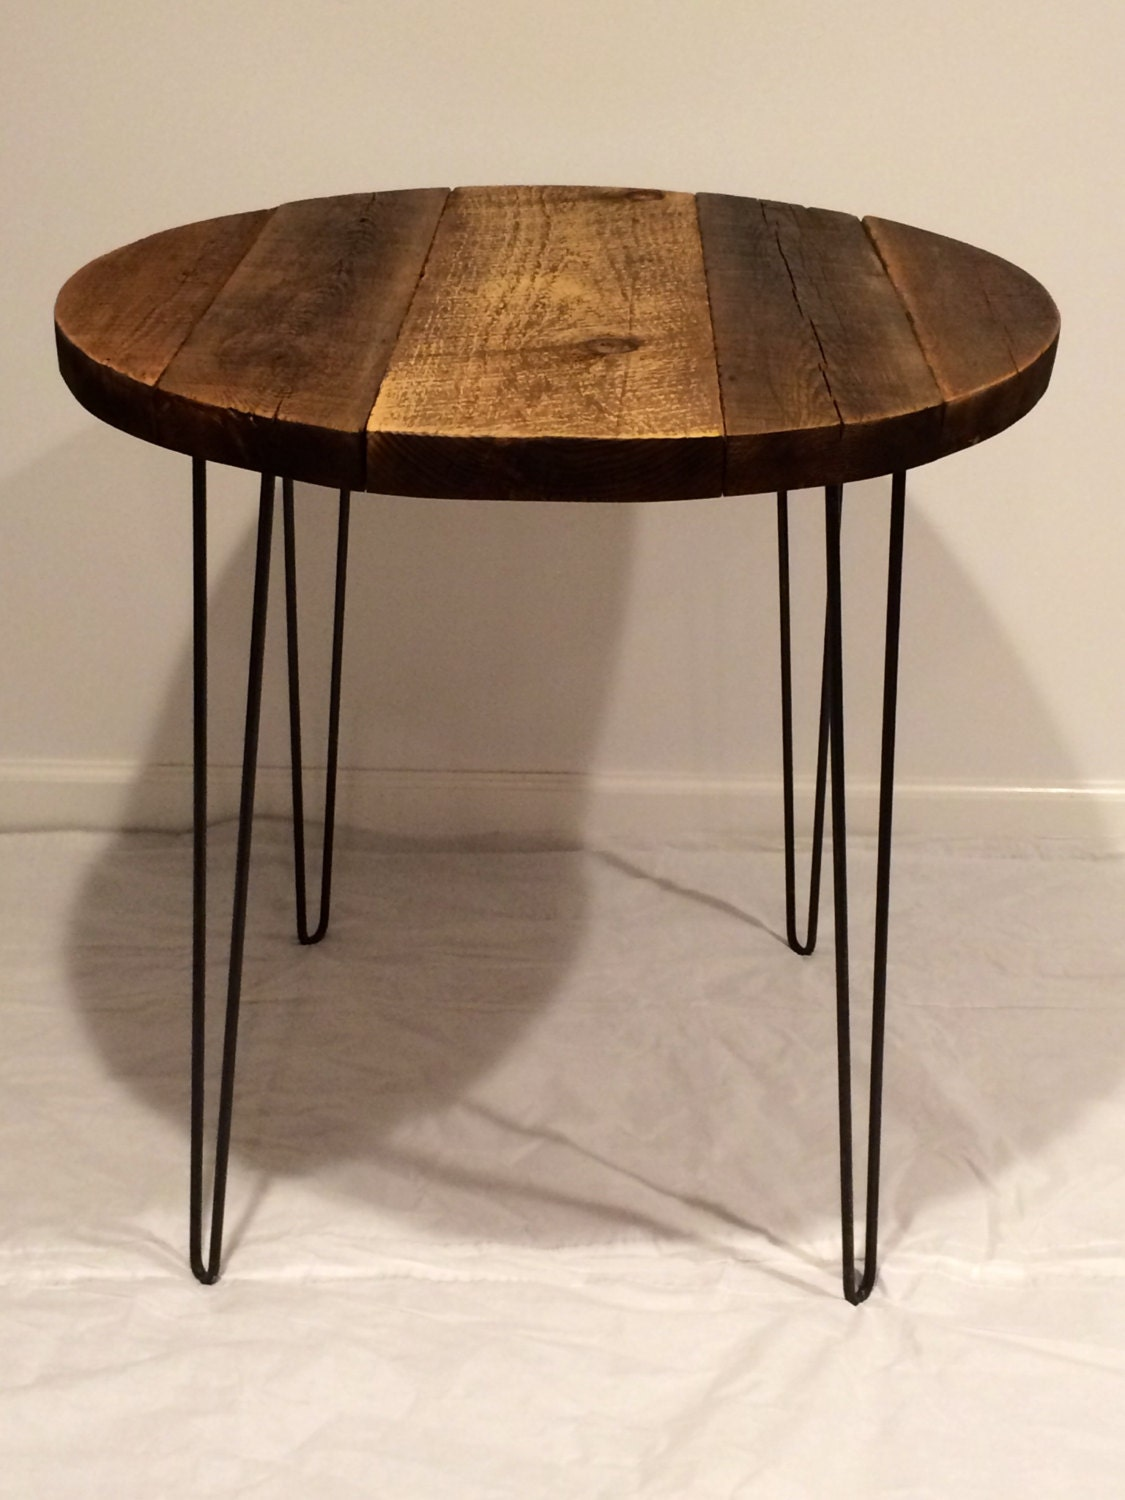 Round Table Reclaimed Wood Furniture Store By Swdesigns74 On Etsy